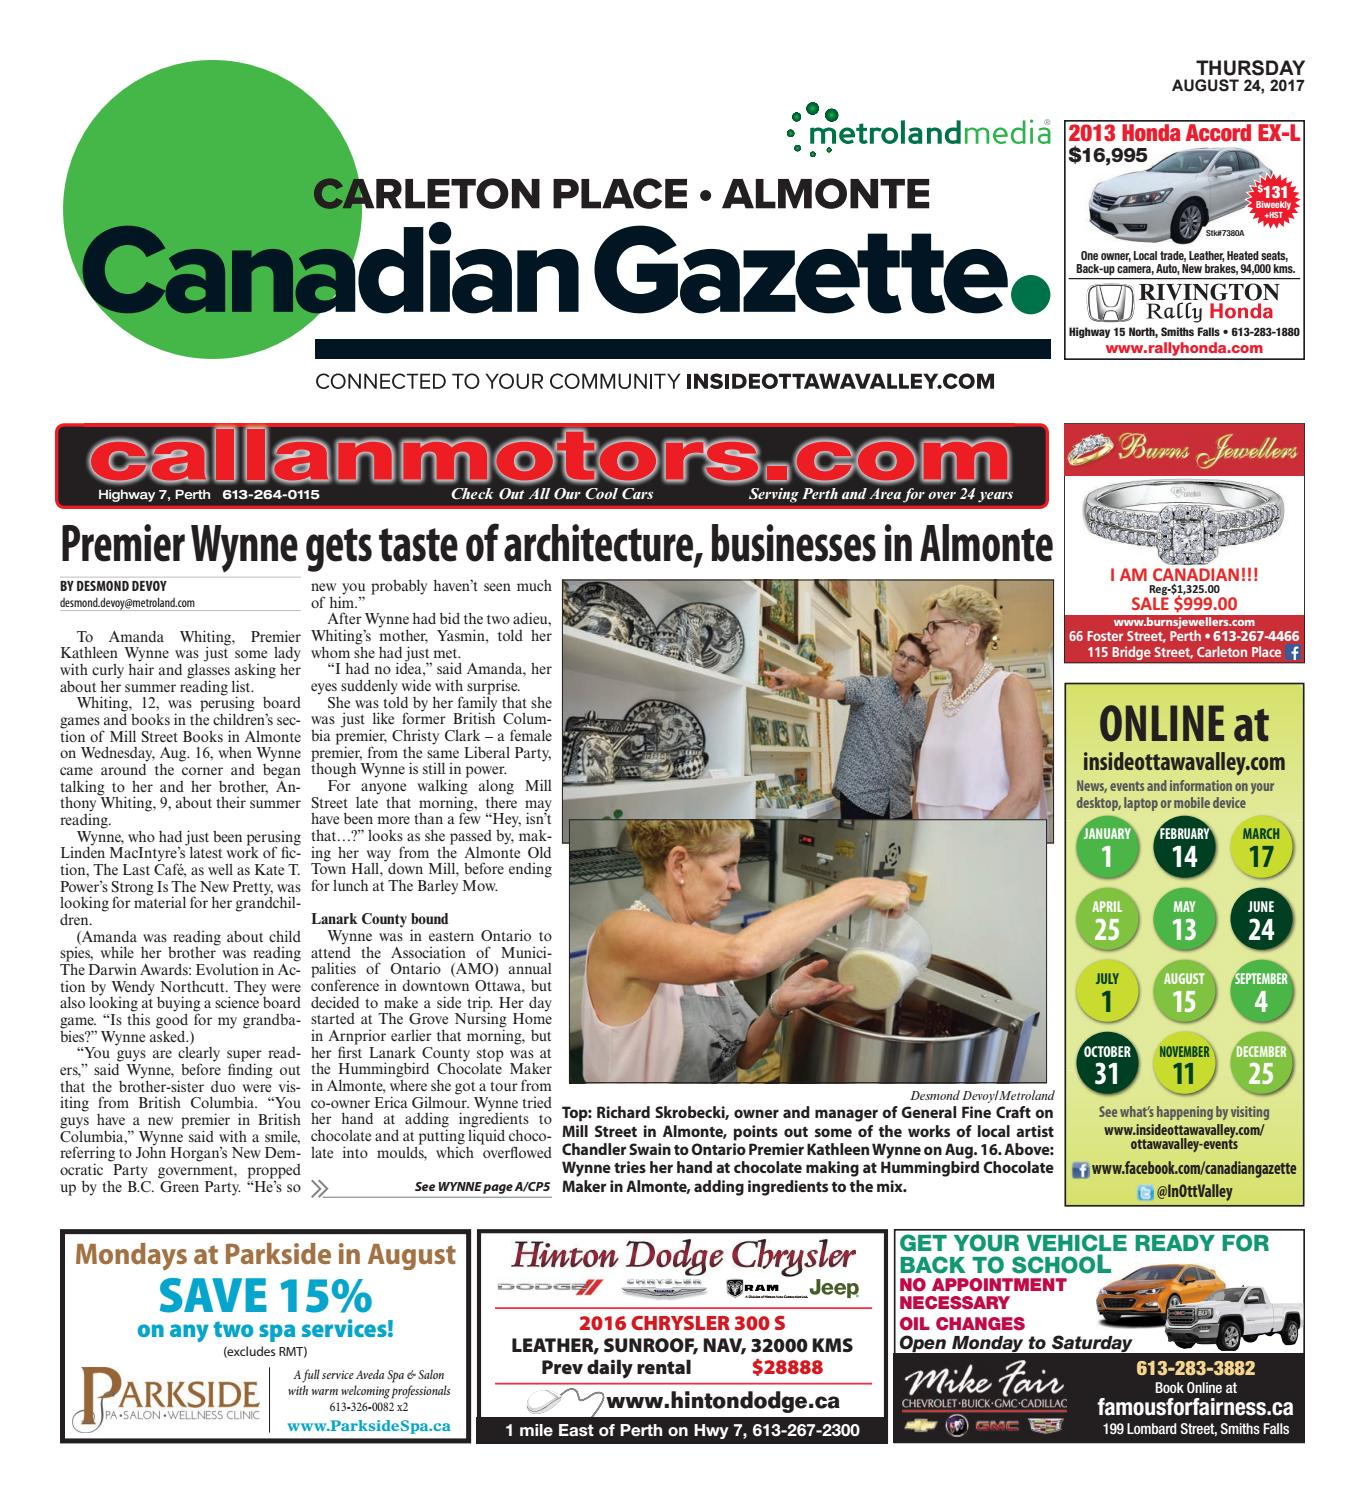 Almontecarletonplace082417 by metroland east almonte carleton almontecarletonplace082417 by metroland east almonte carleton place canadian gazette issuu fandeluxe Gallery